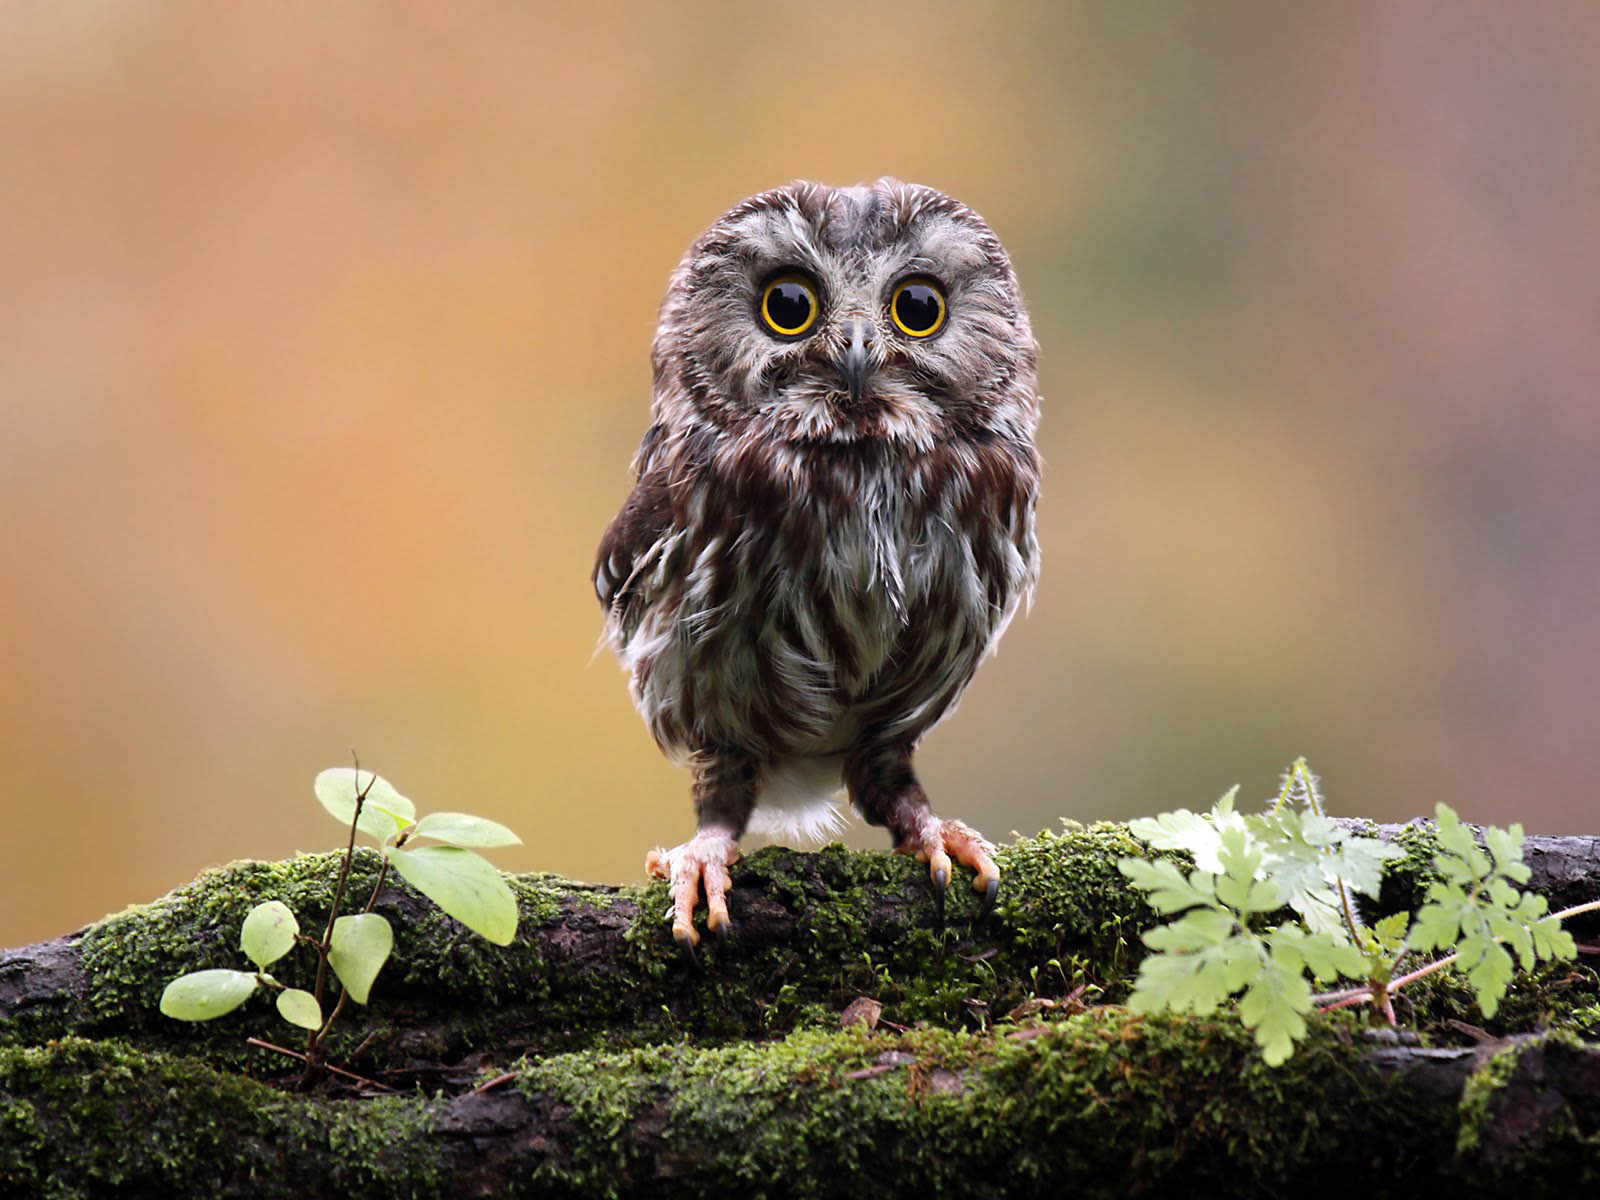 Http Wallpapers Xs Blogspot Com 2012 07 Funny Owl Html